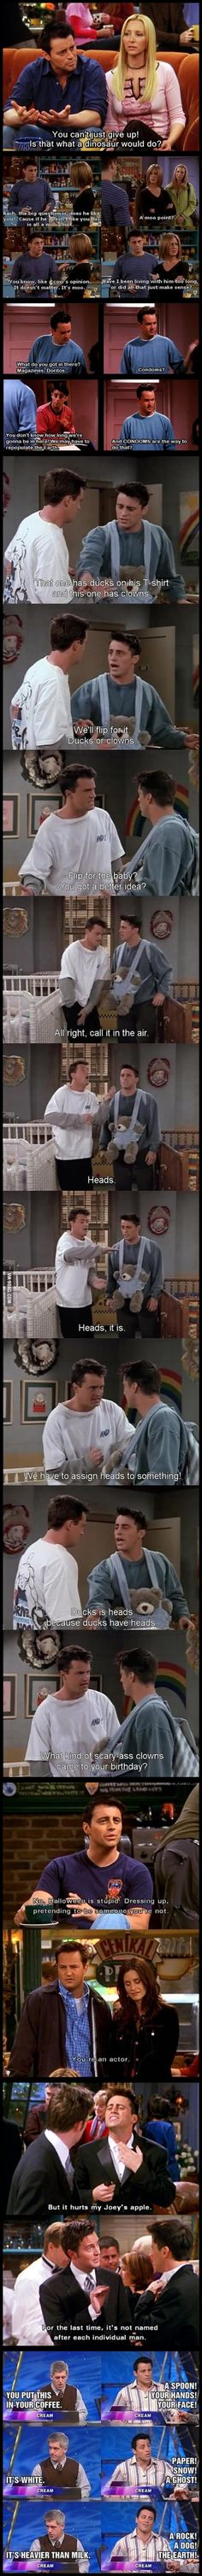 The Faultless Logic Of Joey Tribbiani